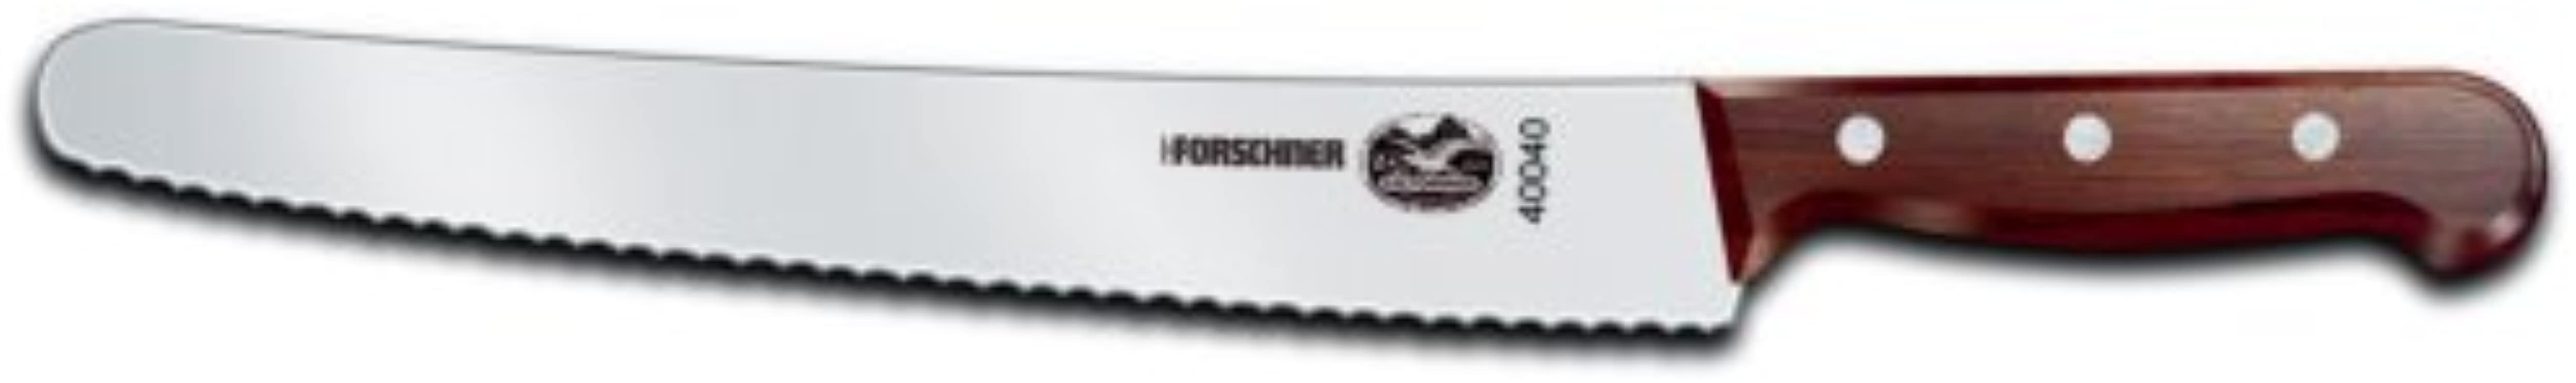 Victorinox 10 1 4 Inch Wavy Edge Bread Knife Rosewood Handle